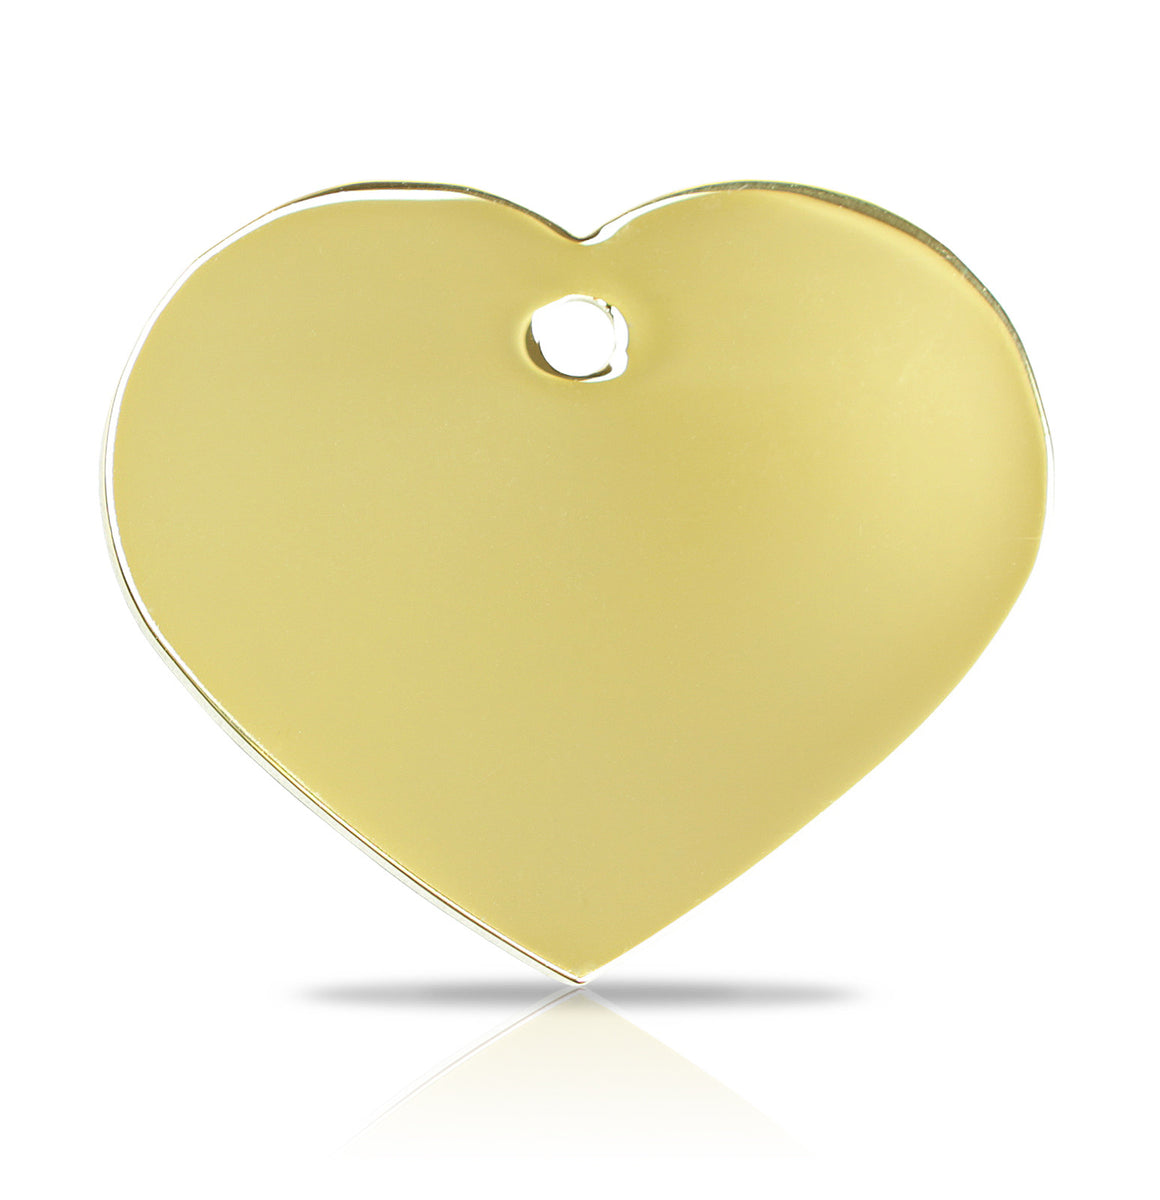 TaggIT Engraving Prestige Large Heart Gold iMarc Pet Tag